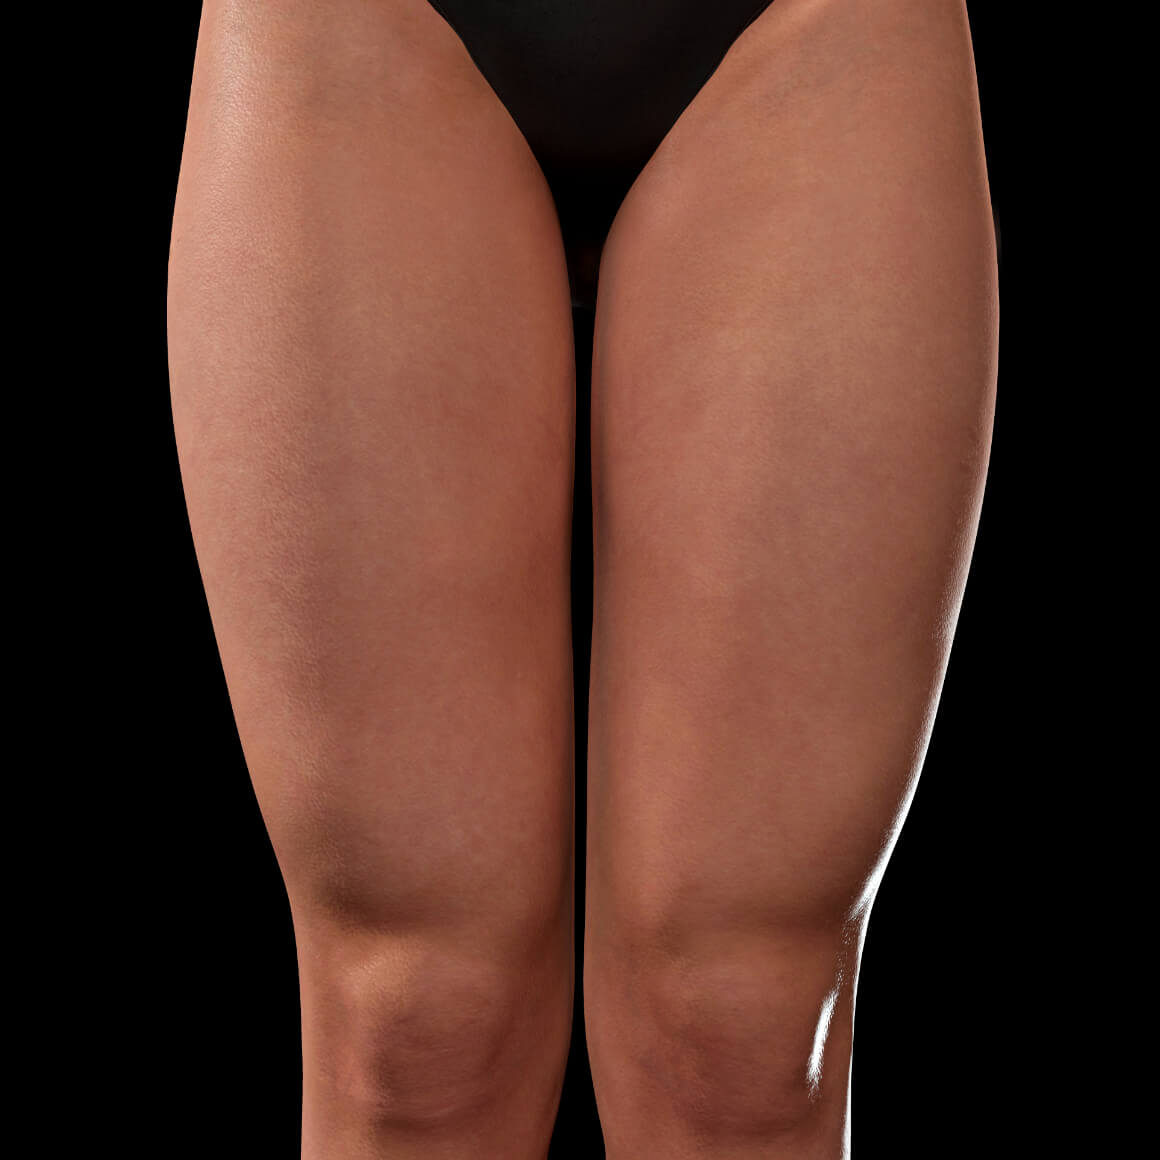 Anterior thighs of a Clinique Chloé female patient after Venus Viva fractional radiofrequency treatments for stretch marks